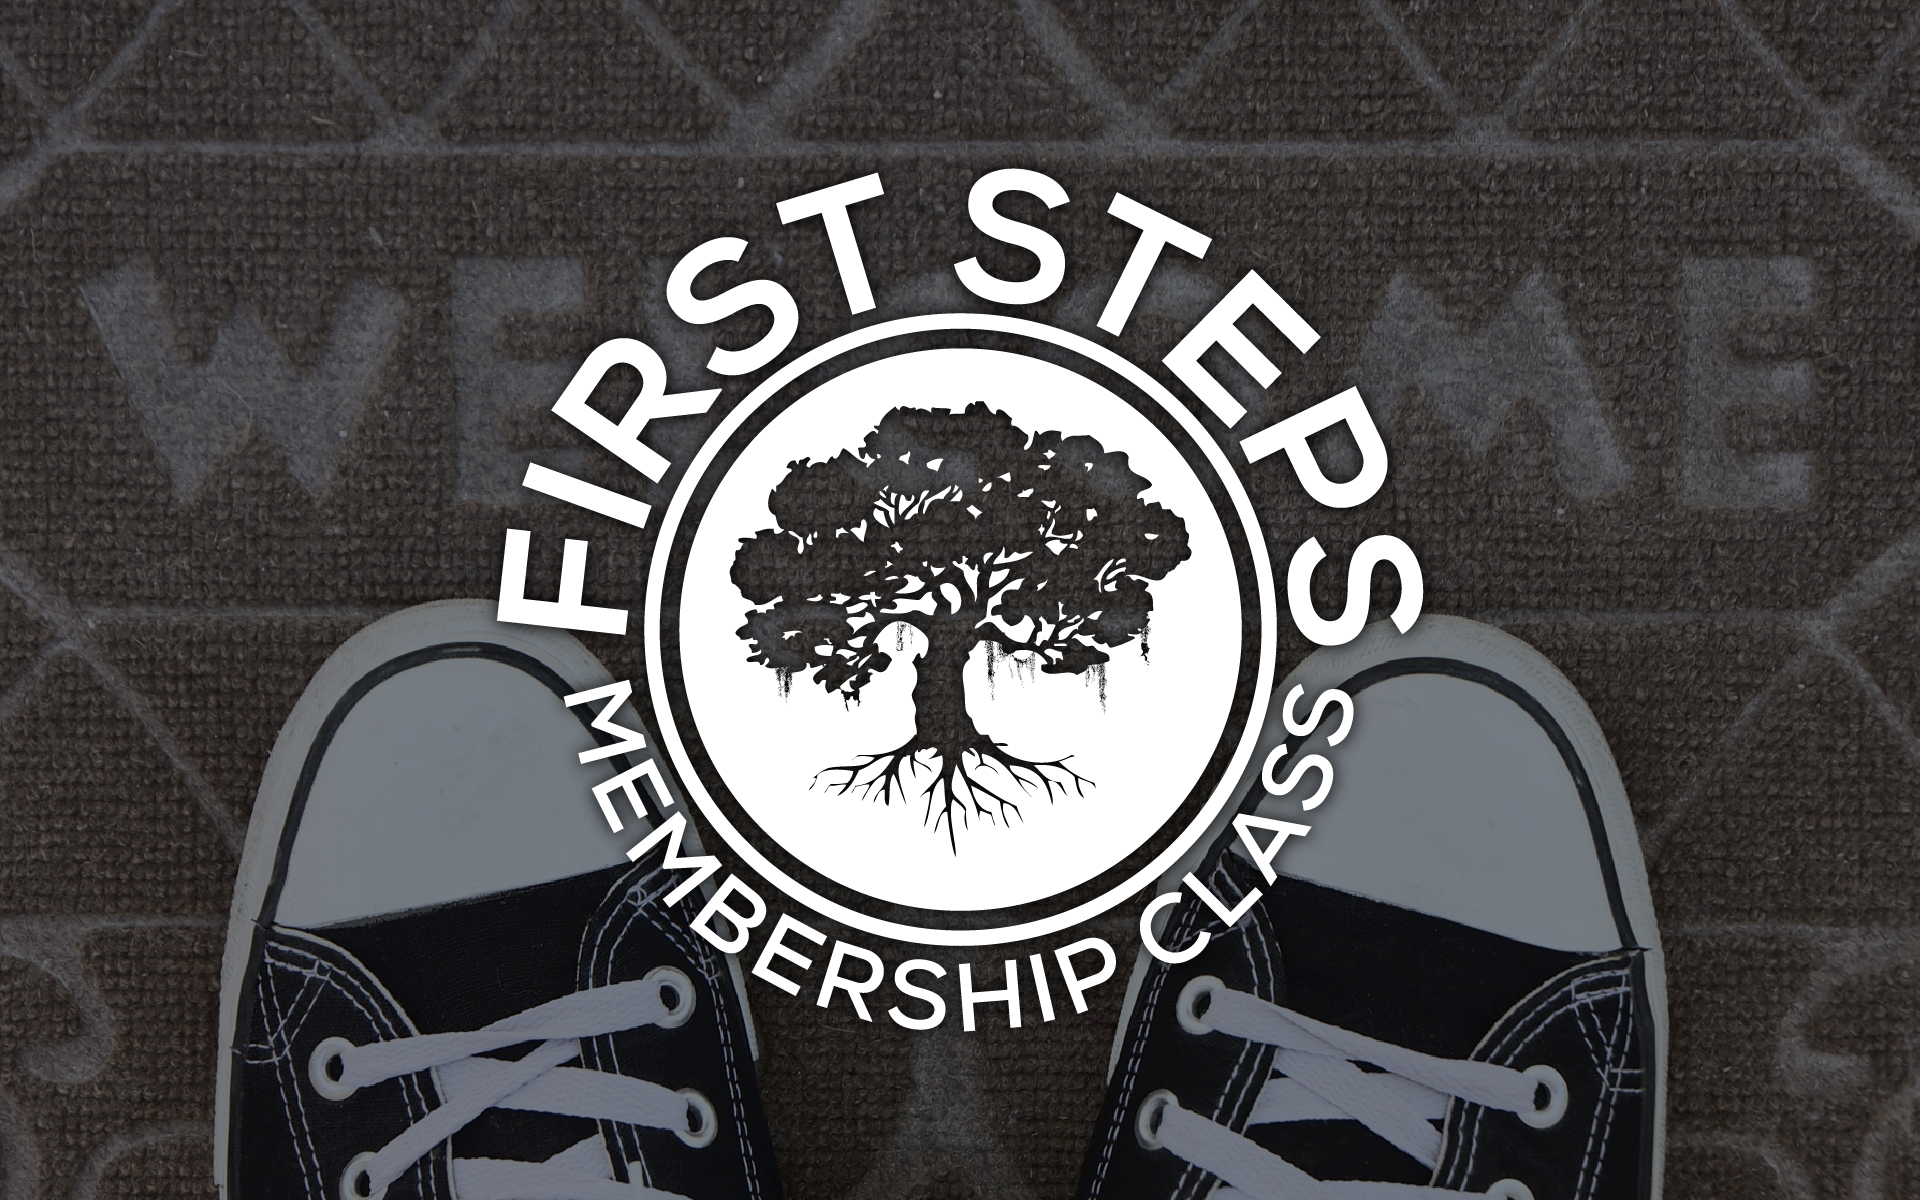 FirstSteps Membership Class | Fall 2019